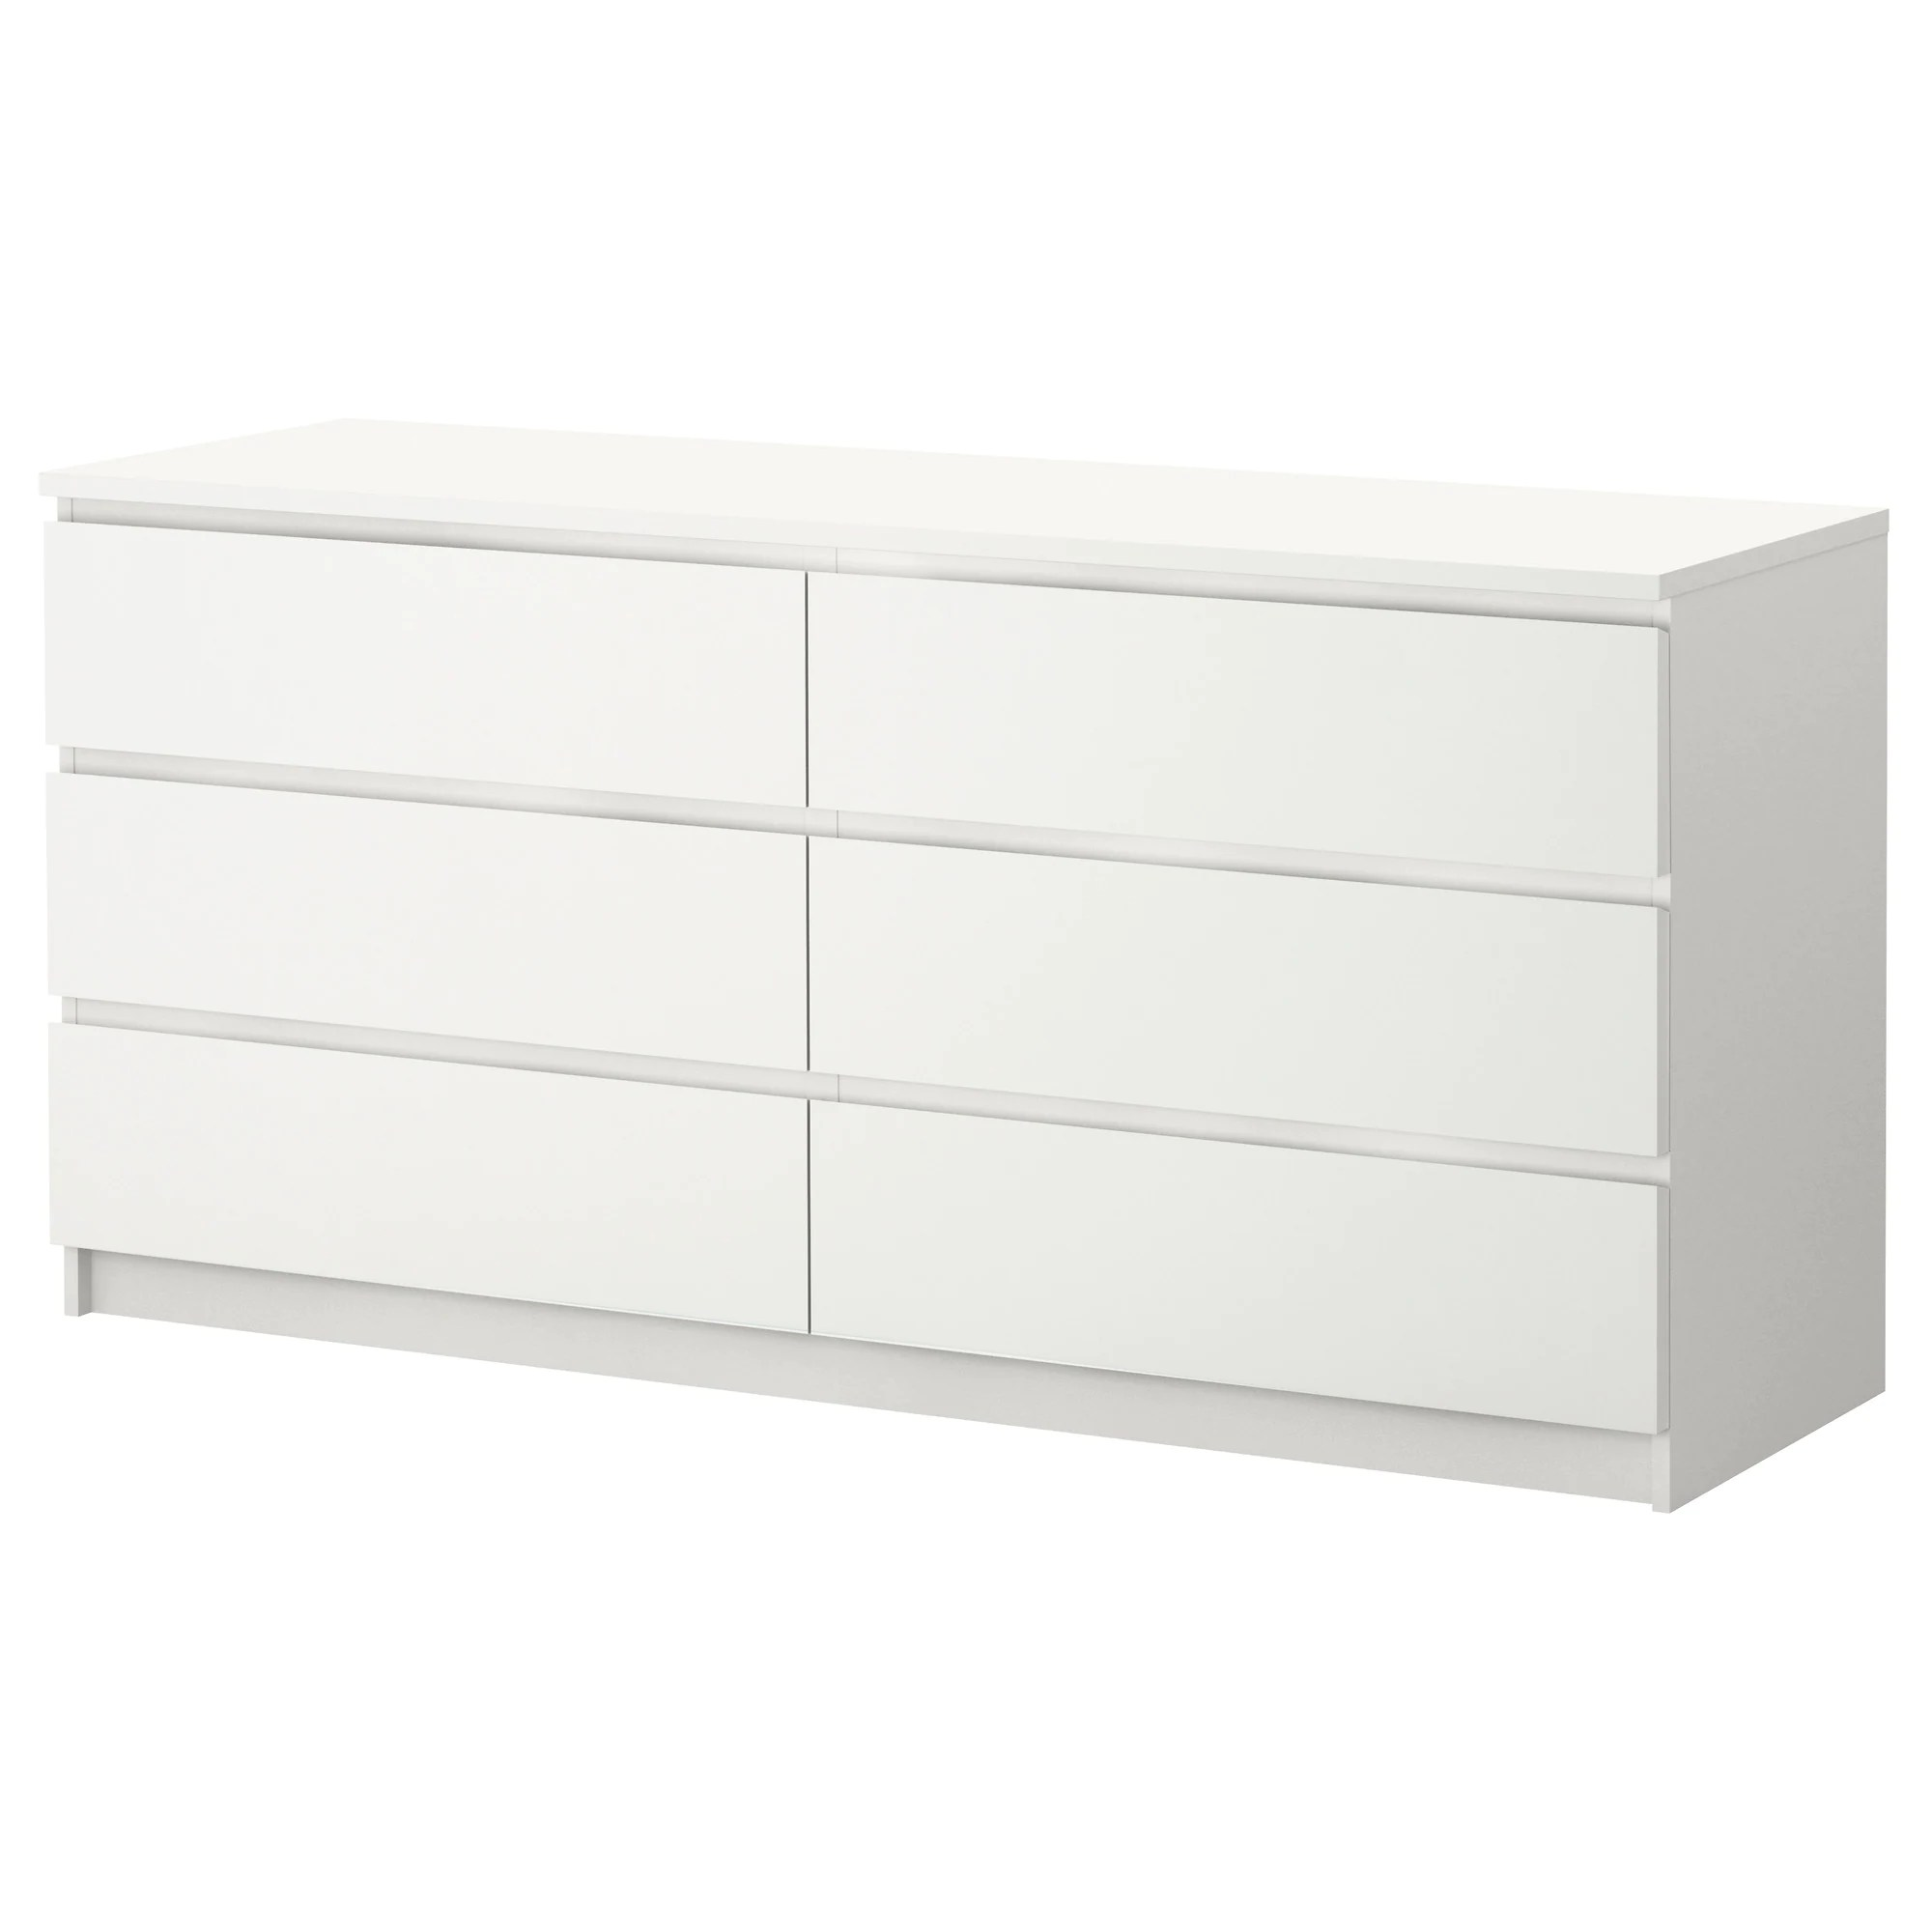 Ikea Commode Blanche Malm Commode 6 Tiroirs Blanc